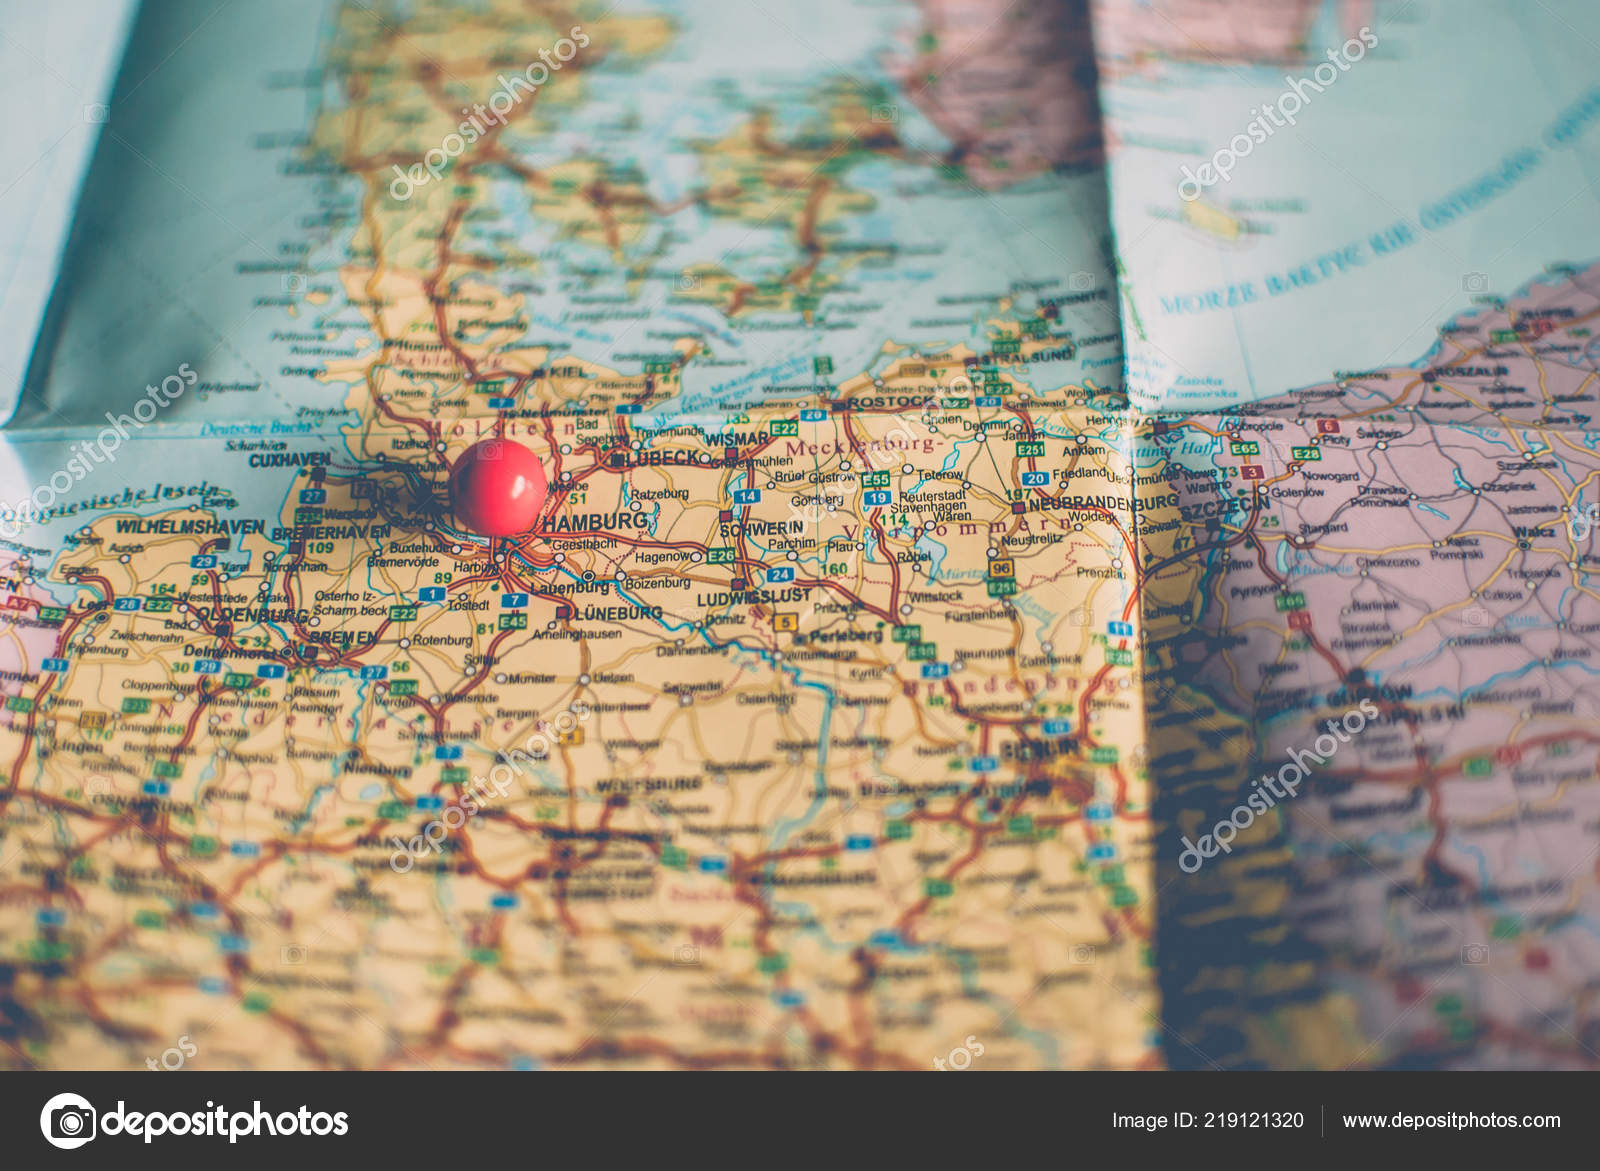 Closeup Traveler Road Map Vintage Retro Colors Countries Cities Western Stock Photo C Yurii Zymovin 219121320